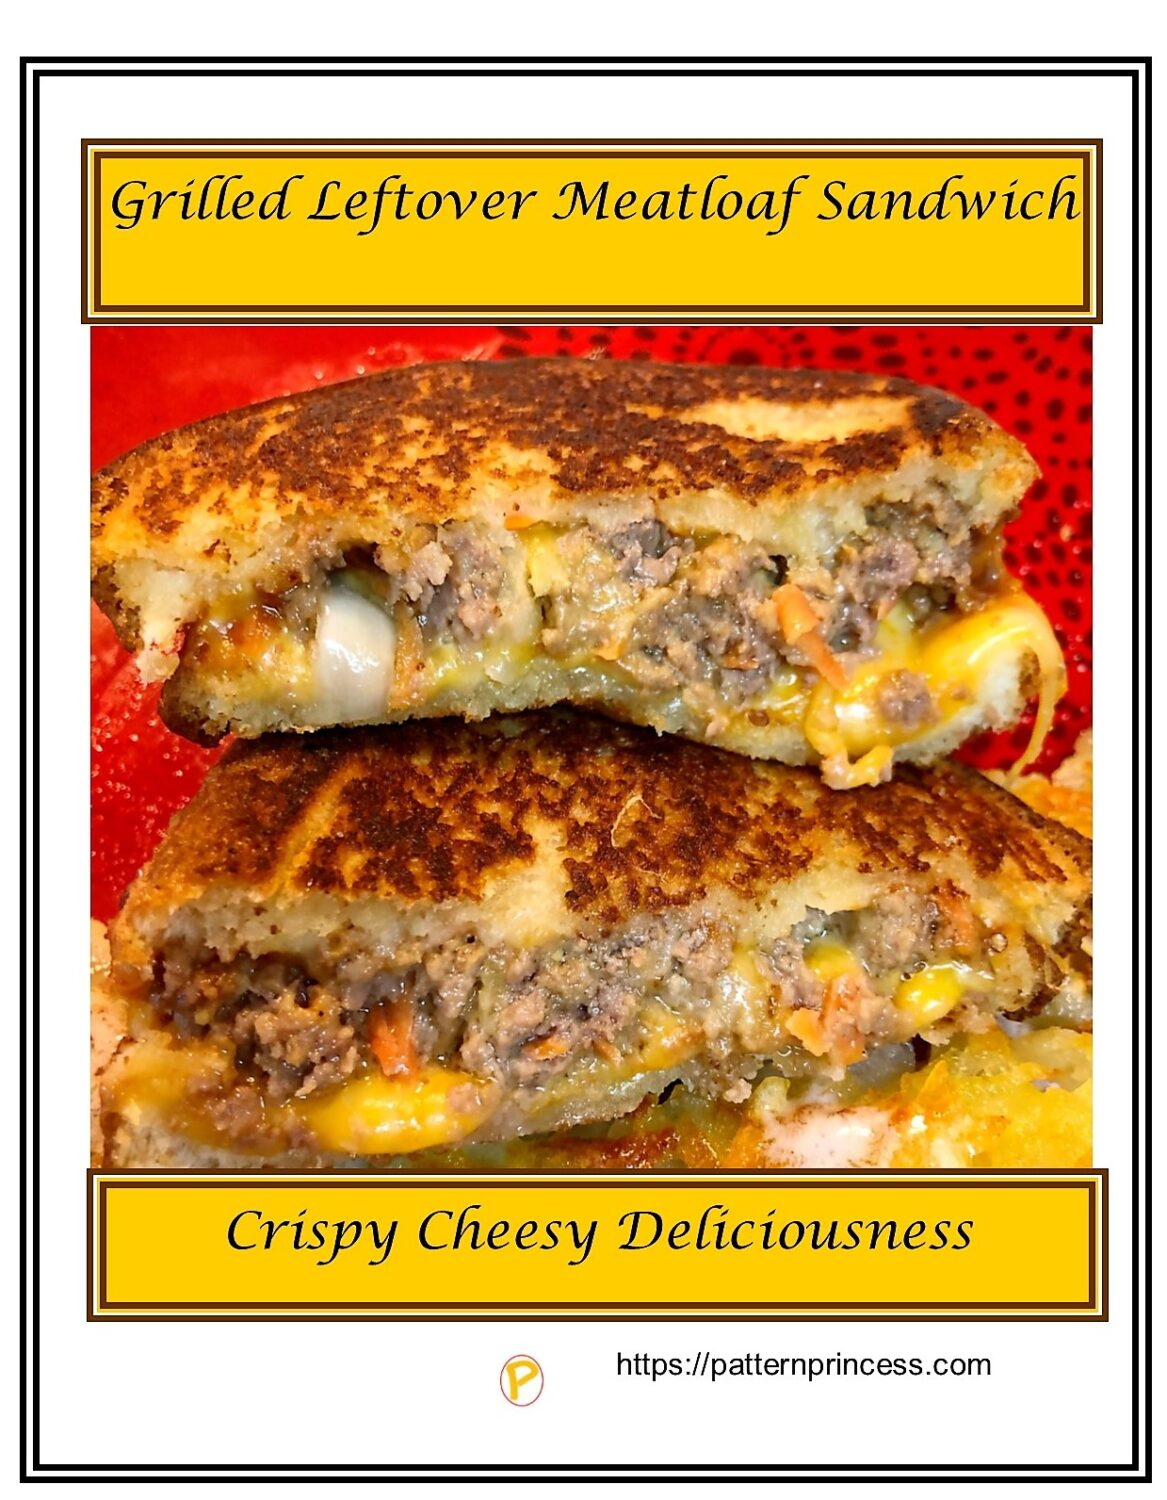 Grilled Leftover Meatloaf Sandwich 1